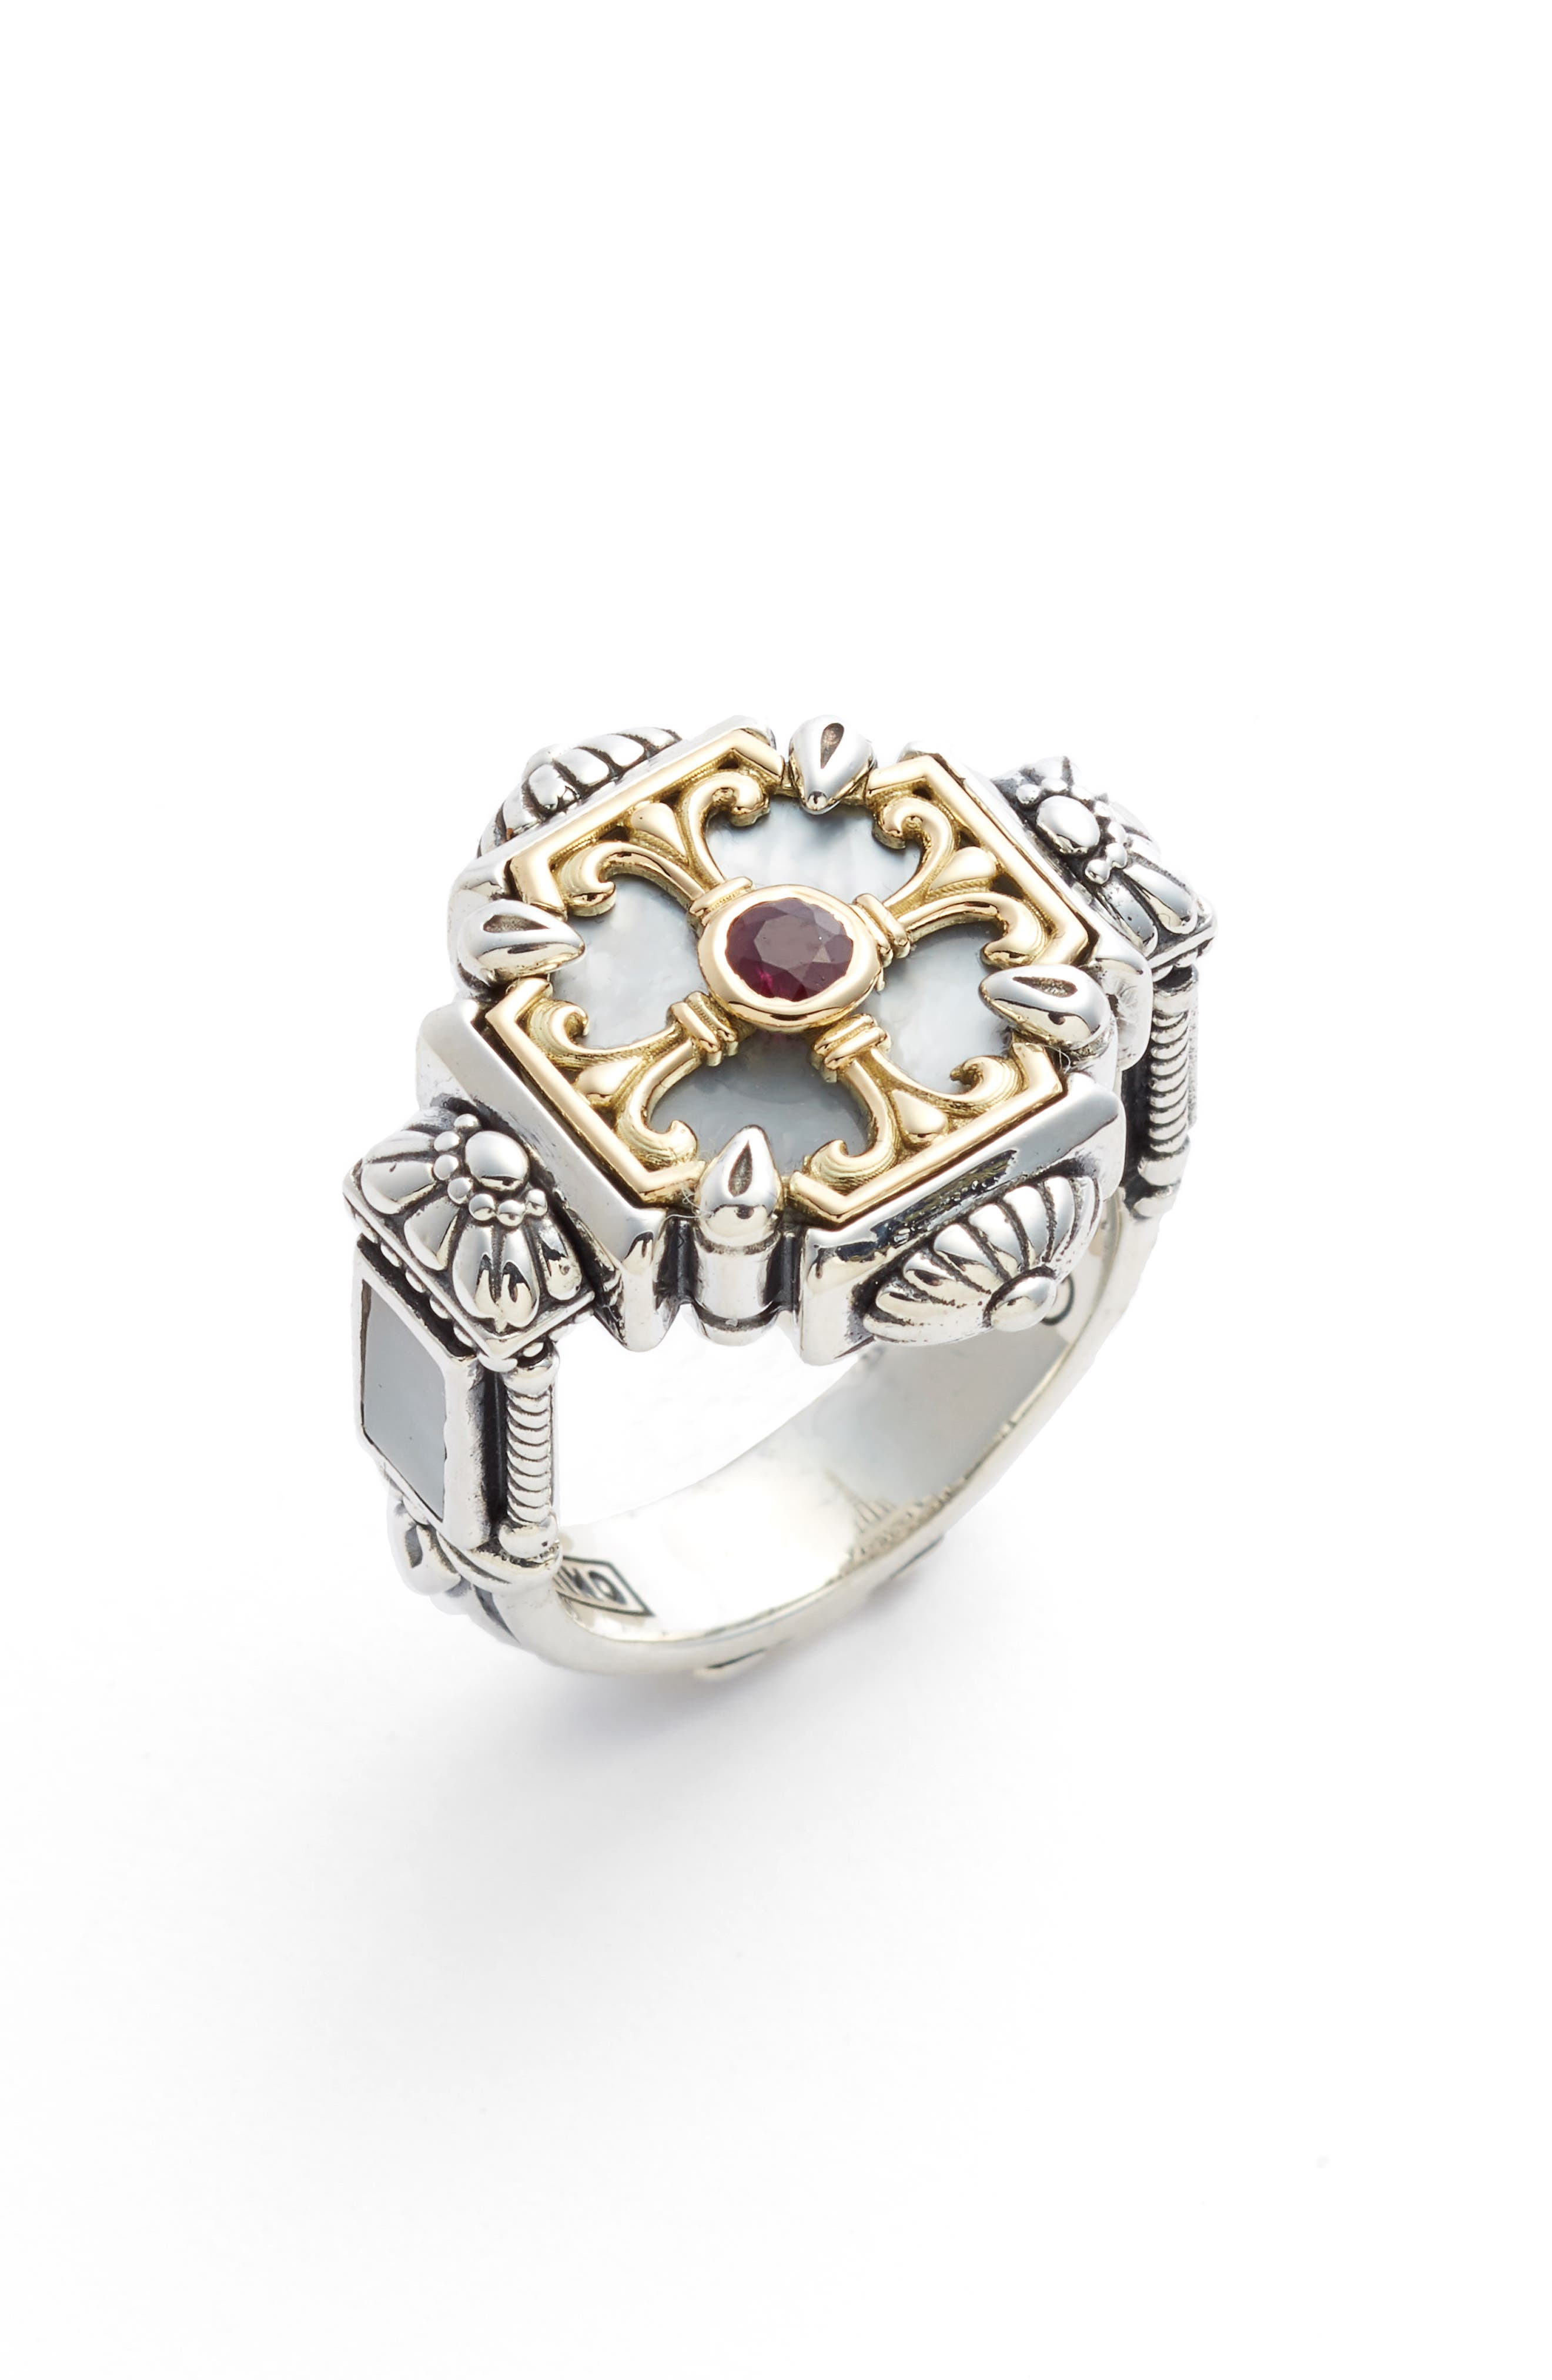 Sterling Silver & Ruby Ring,                         Main,                         color, SILVER/ GOLD/ WHITE